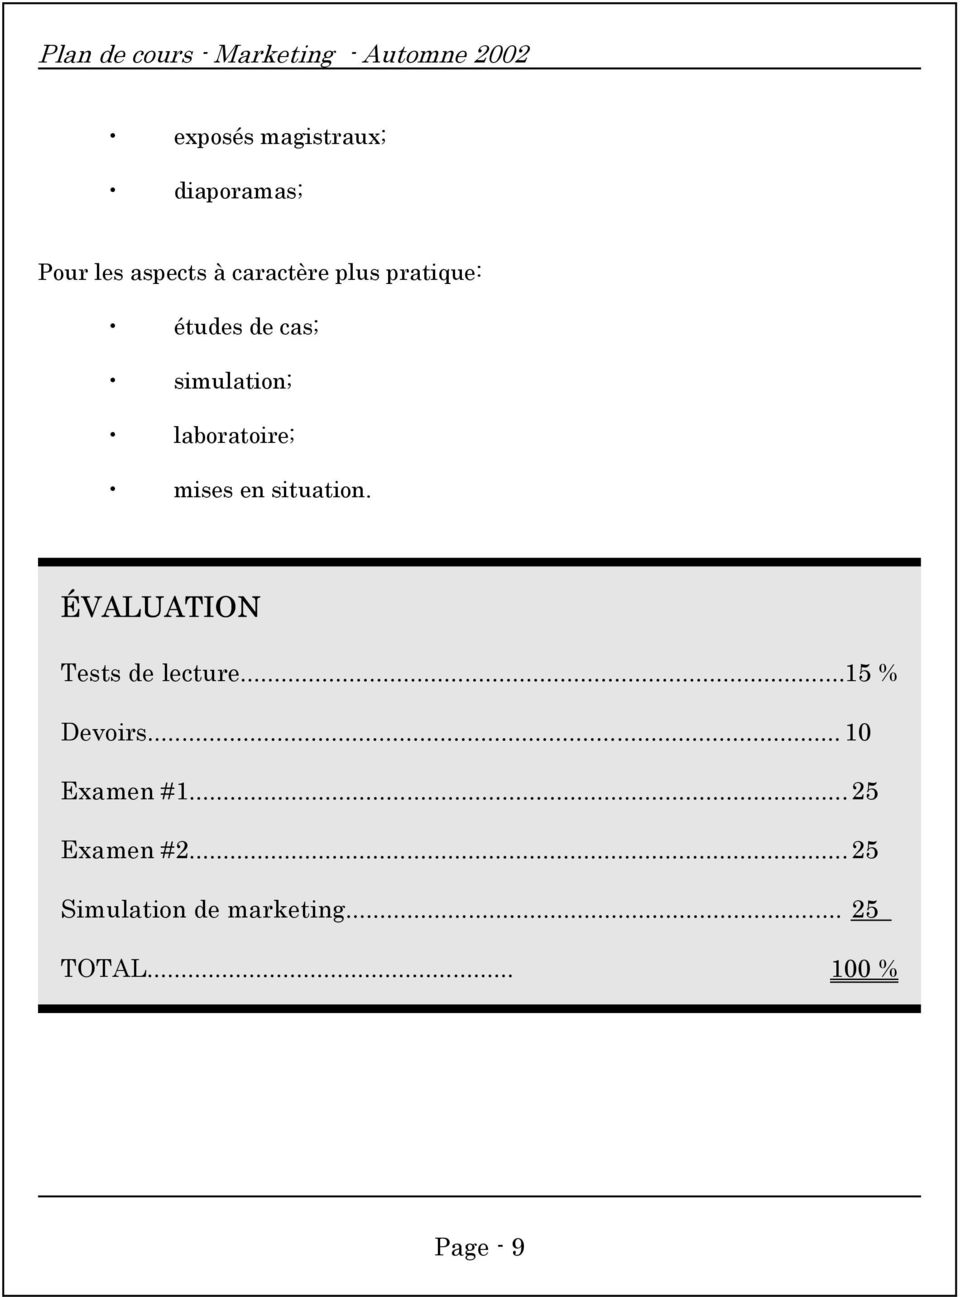 situation. ÉVALUATION Tests de lecture...15 % Devoirs...10 Examen #1.